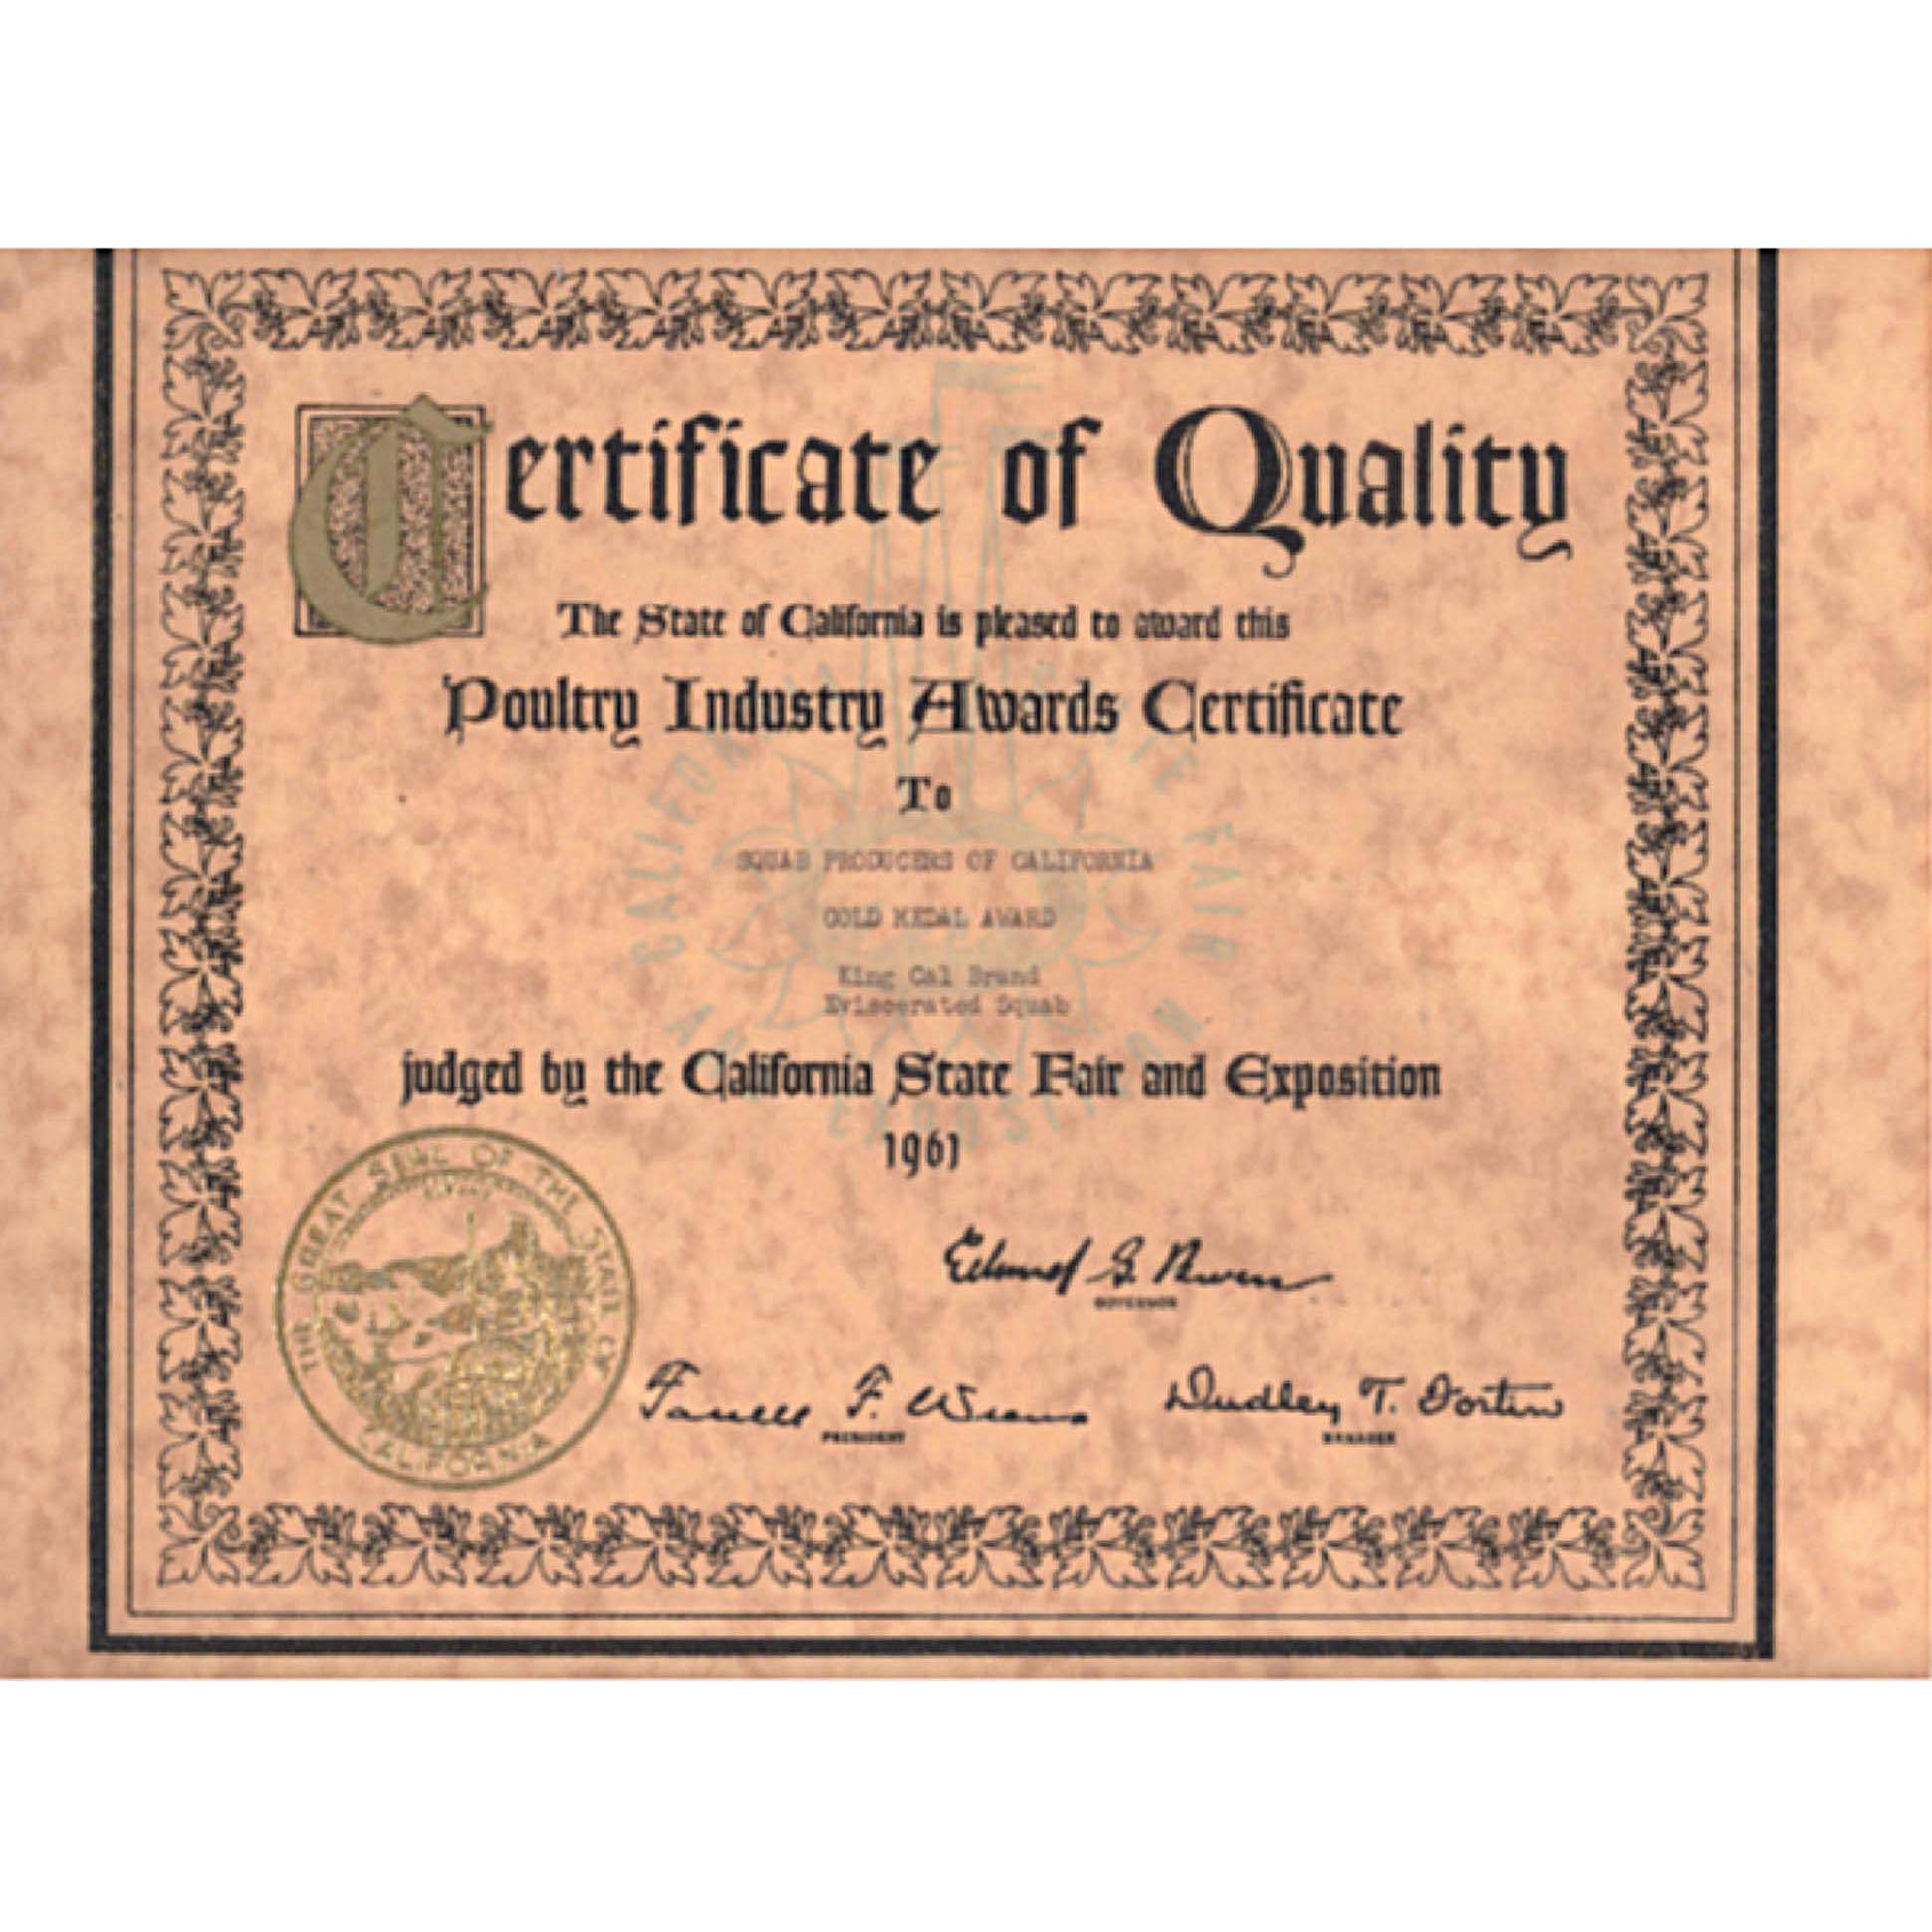 1961. State Fair Certificate of Quality. Awarded to Squab Producers of California / King Cal Squabs.